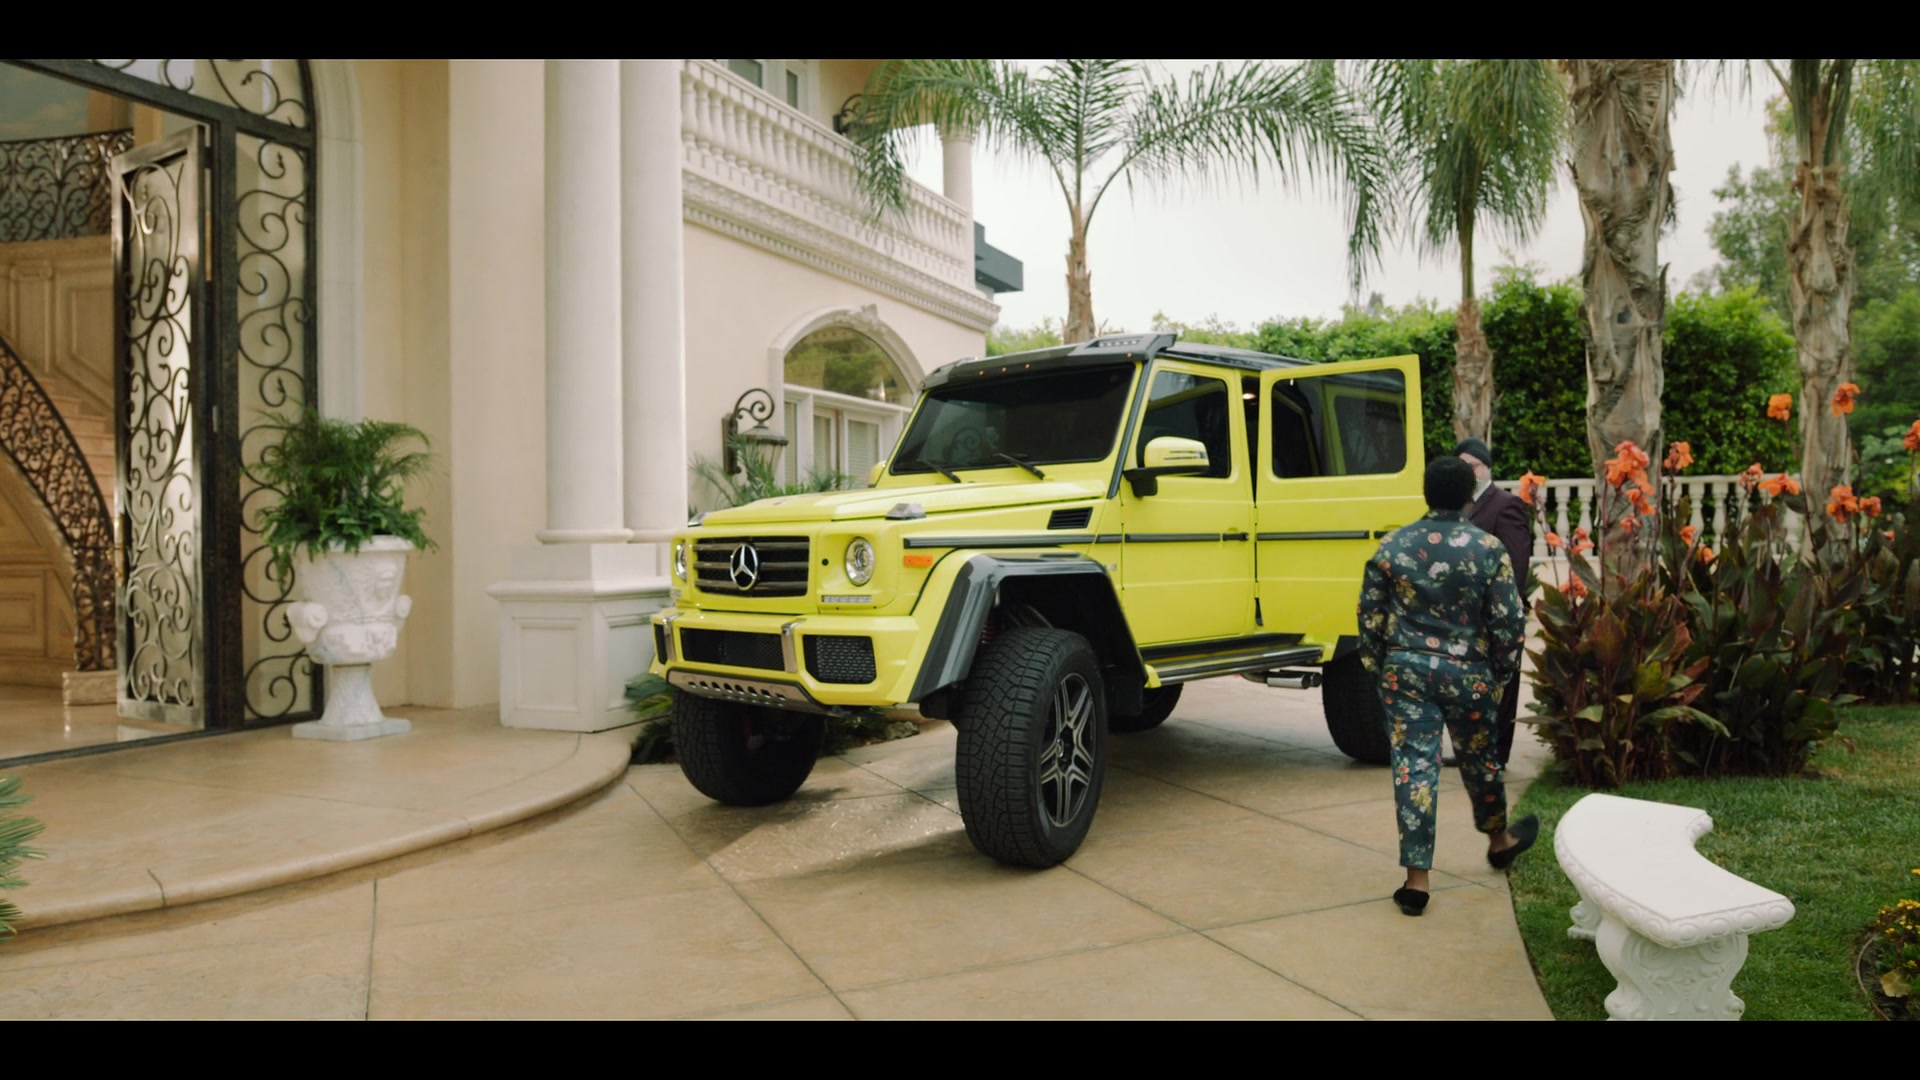 mercedes benz g class g 500 4x4 suv in rim of the world 2019 movie. Black Bedroom Furniture Sets. Home Design Ideas